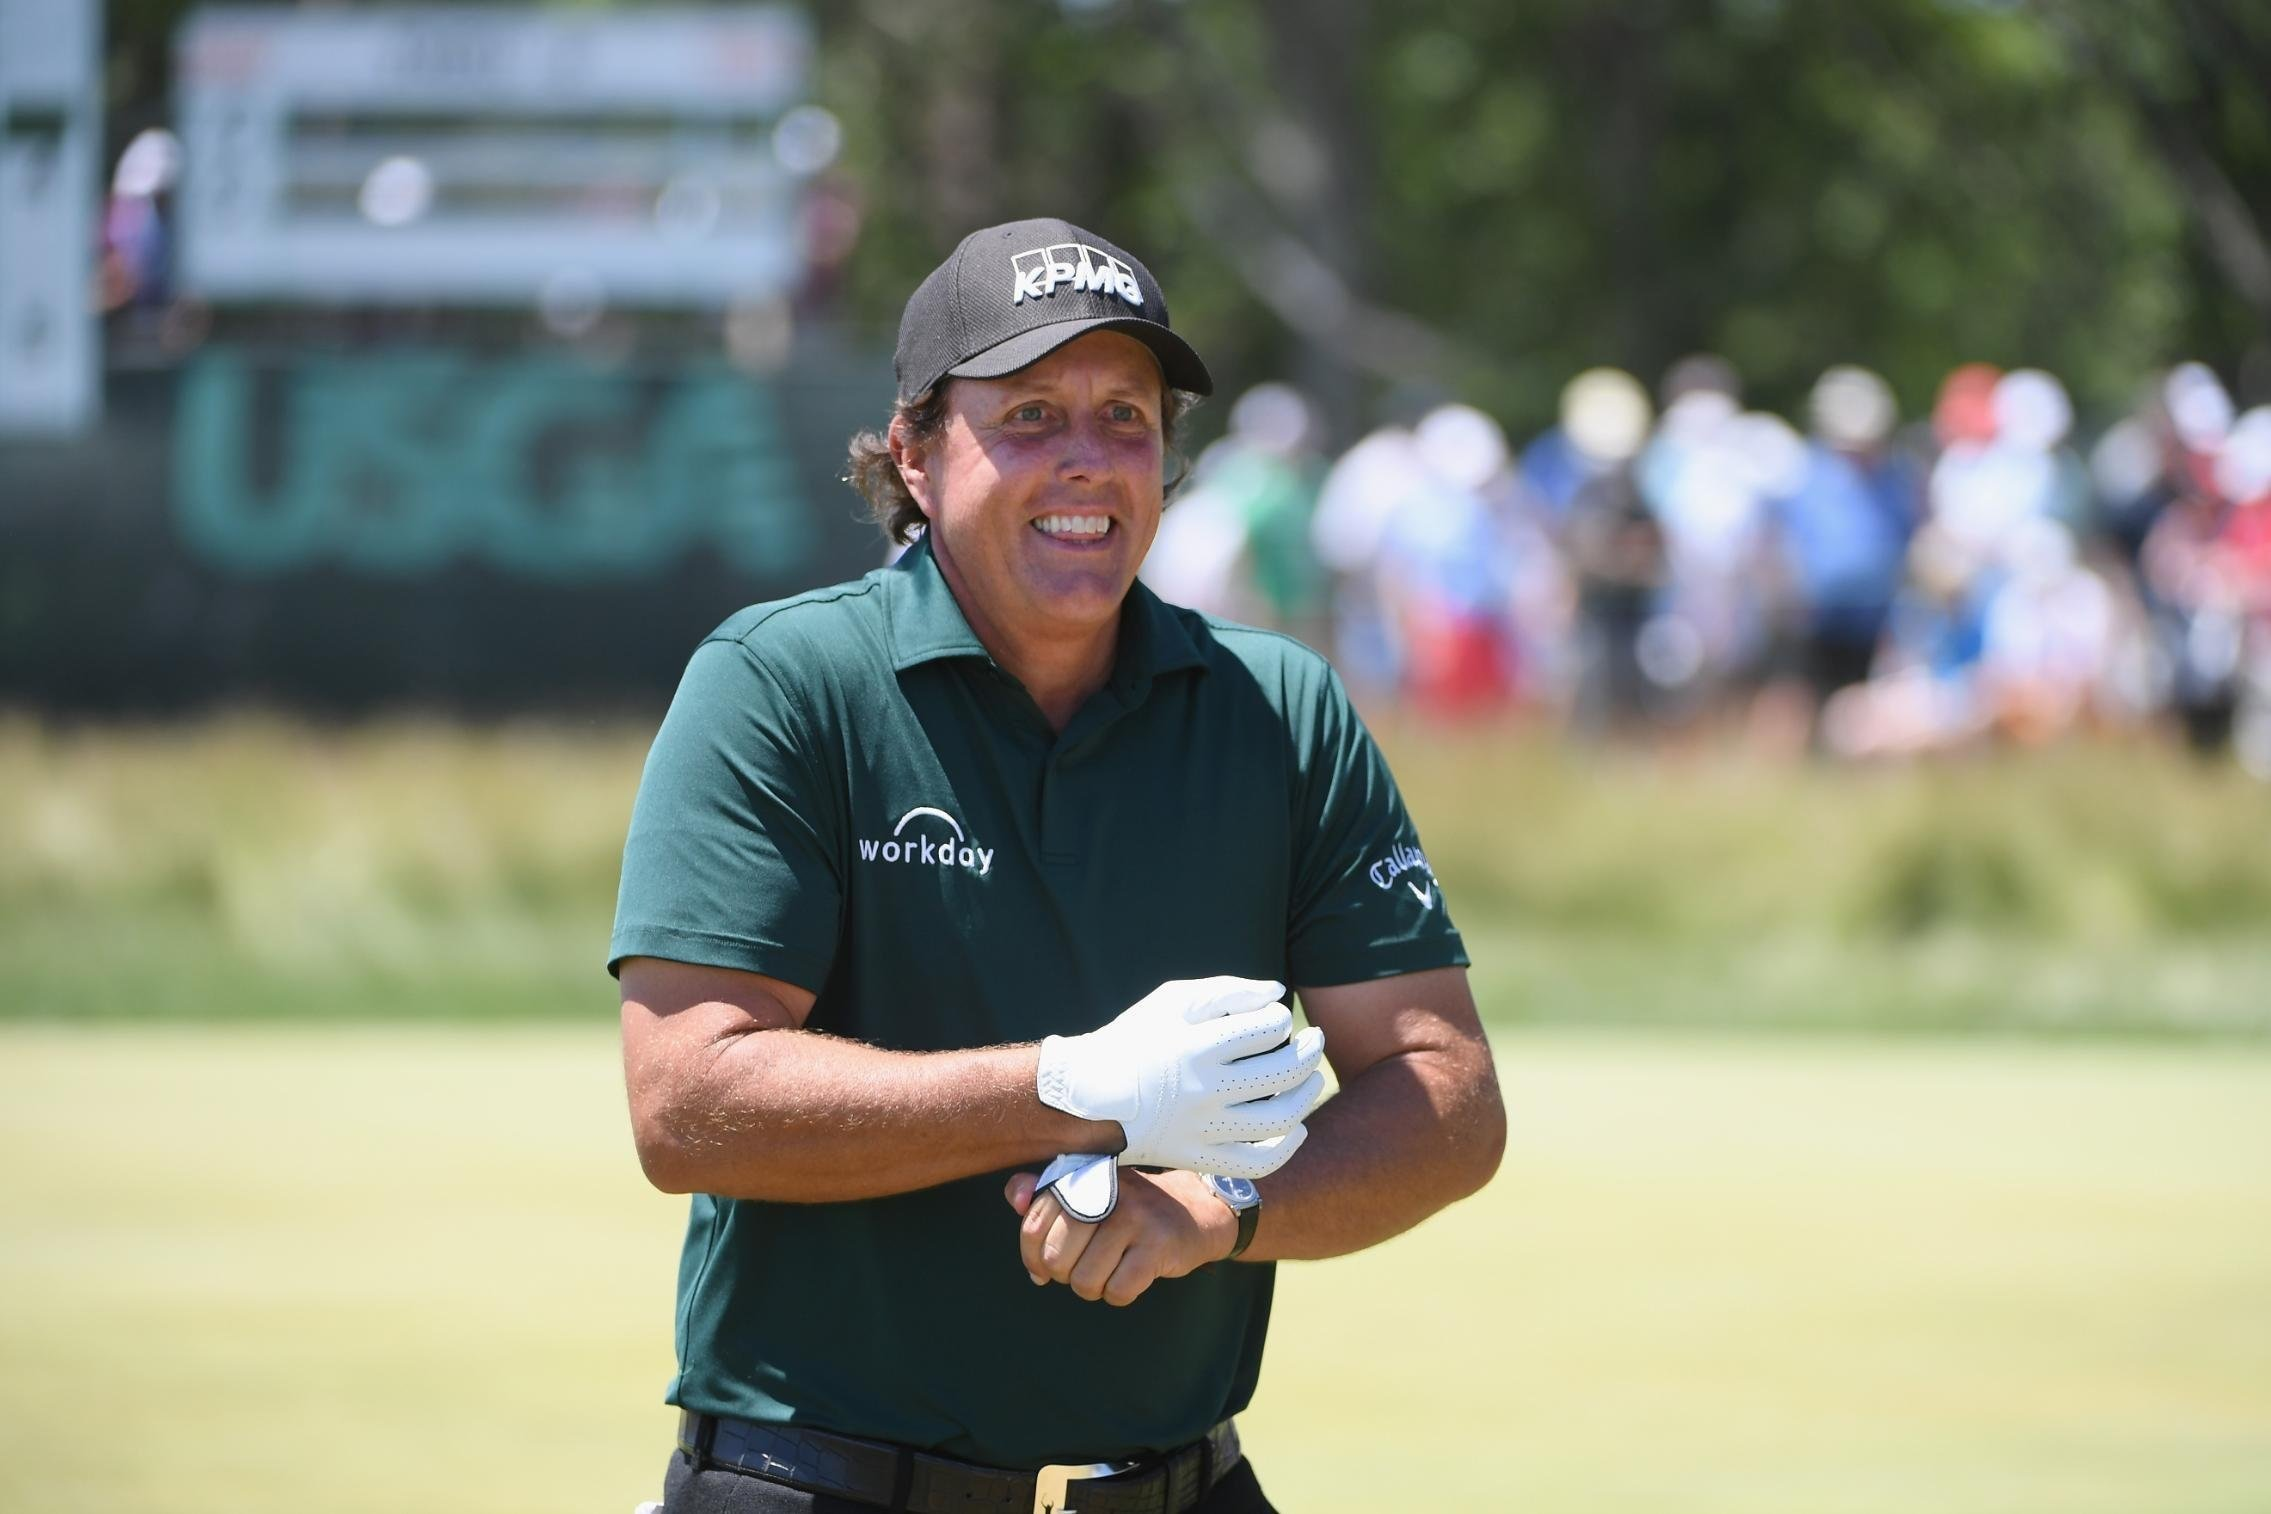 Phil Mickelson Took Advantage Of Risky Loophole With Double-Putt